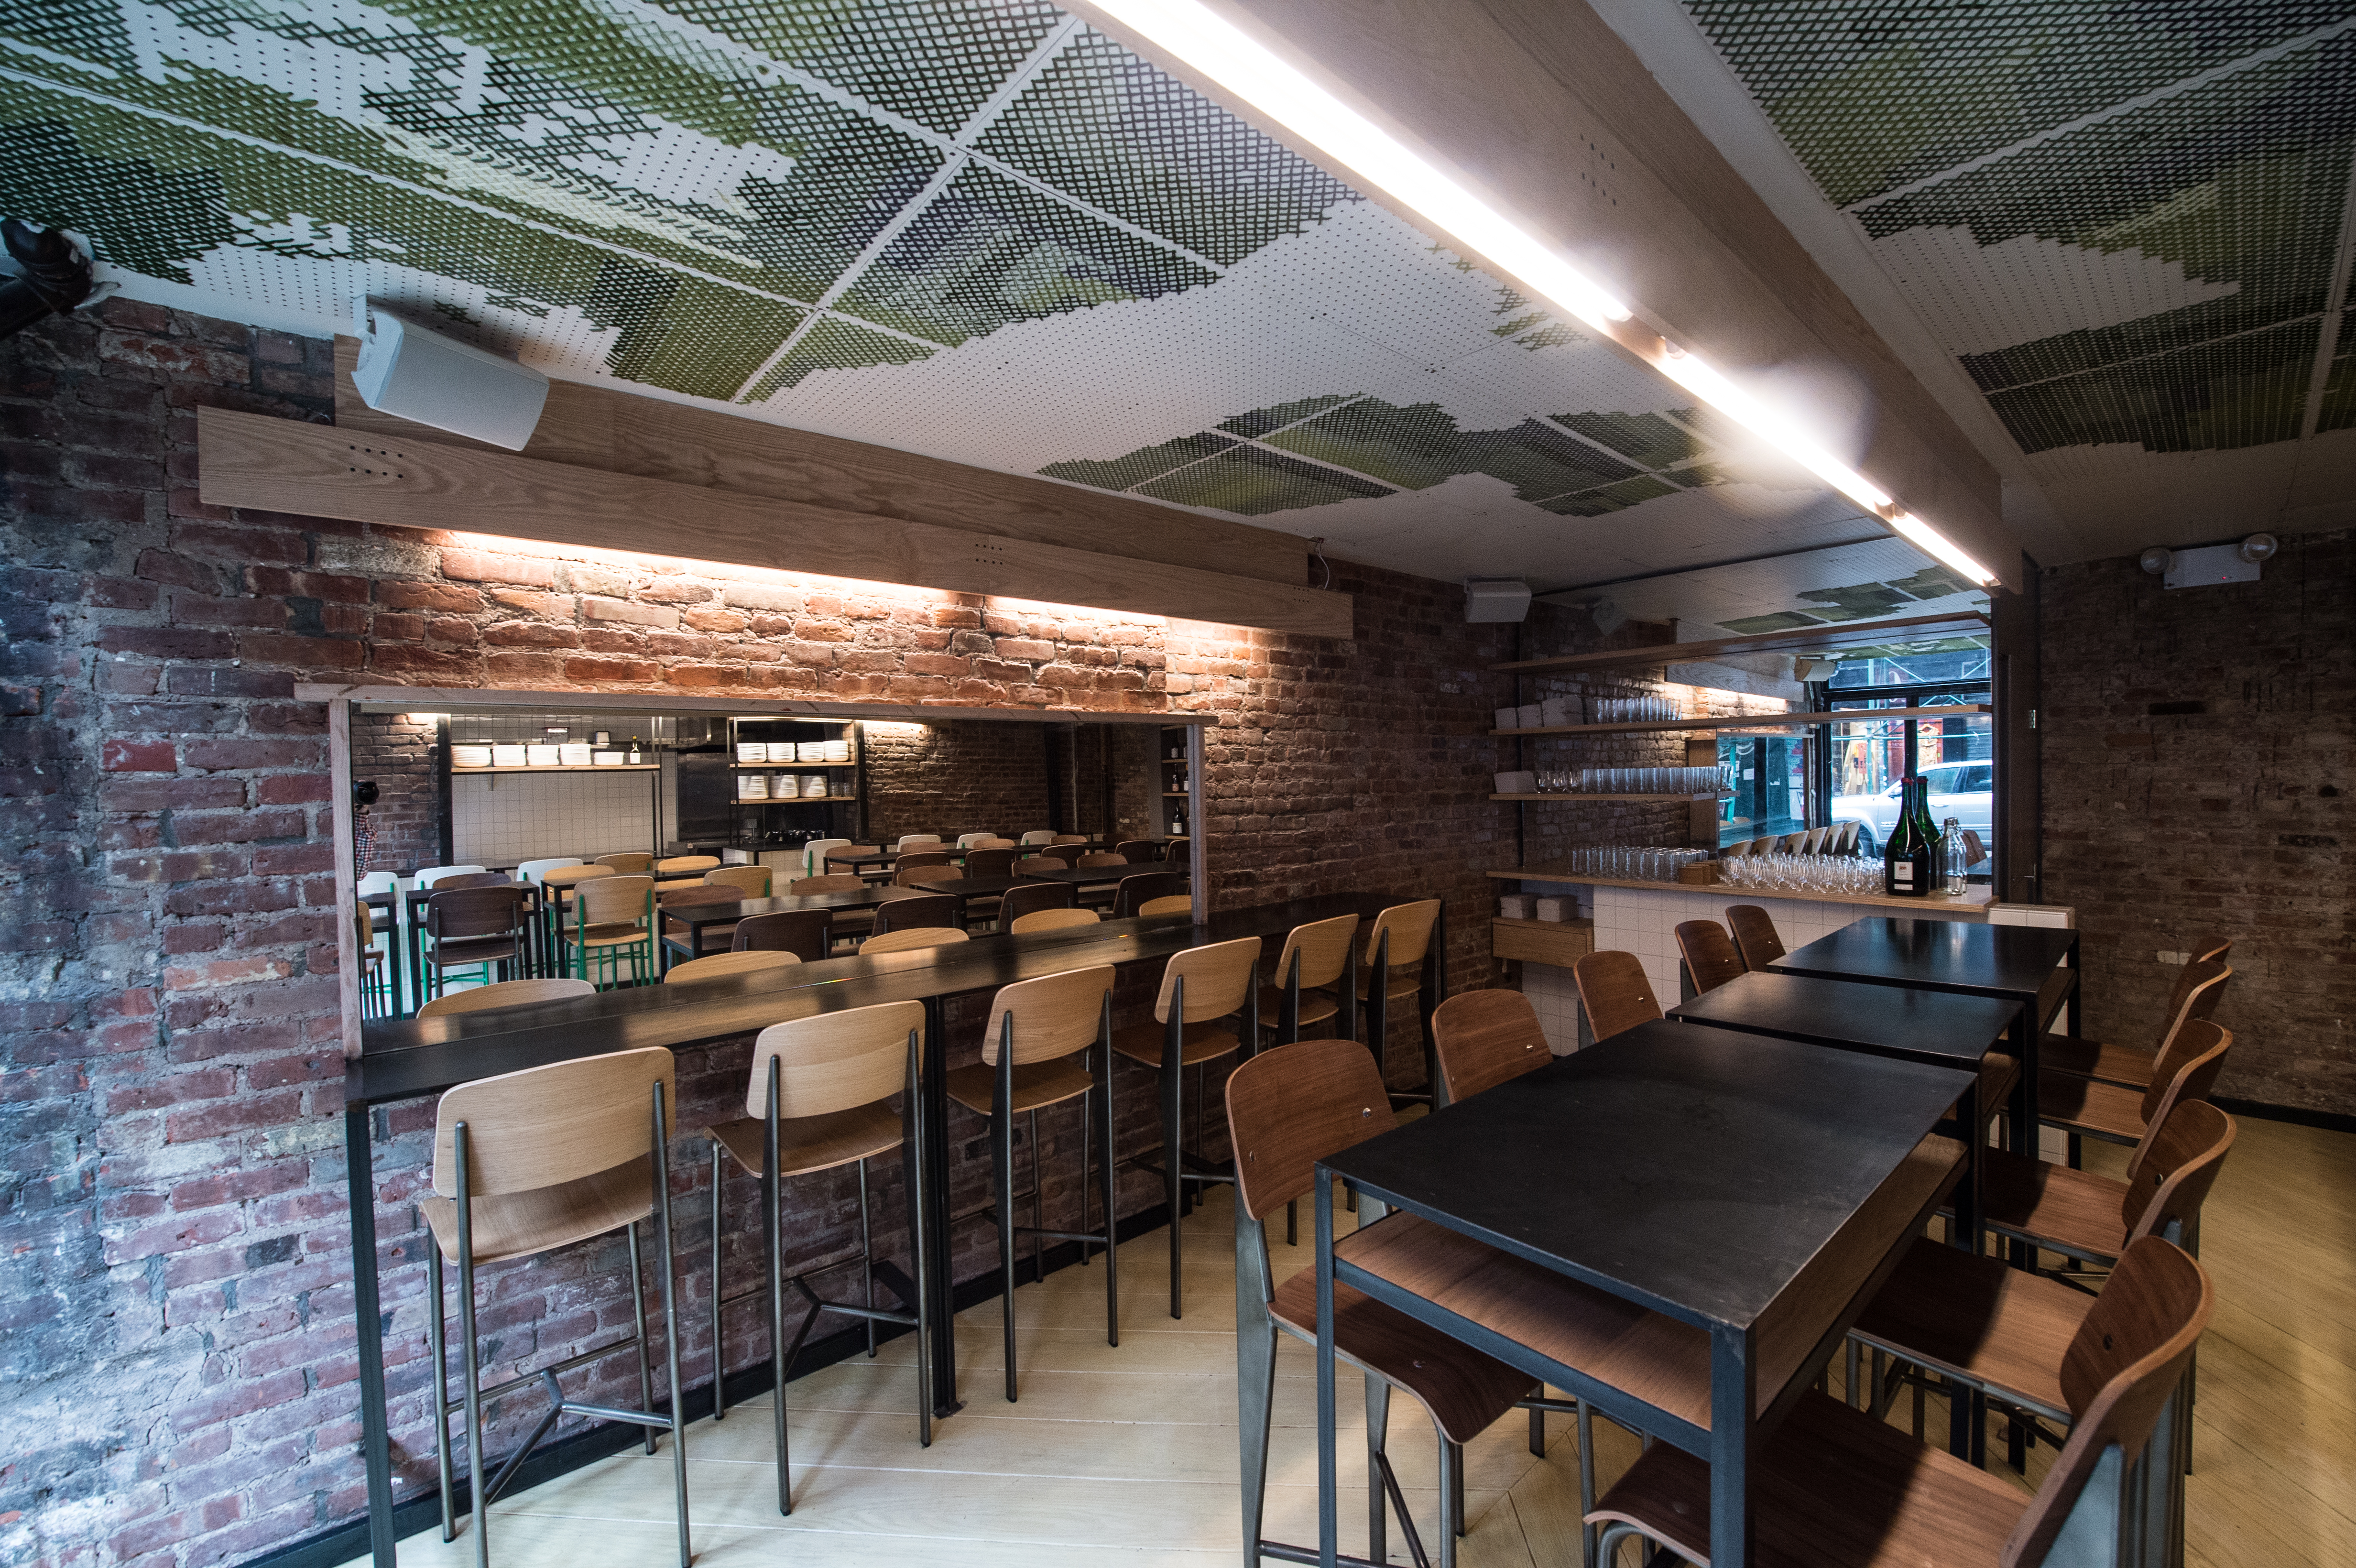 The restaurant at union fare a sprawling complex in union square in - A Restaurant To Try This Weekend In New York City Fritzl S Lunch Box Eater Ny